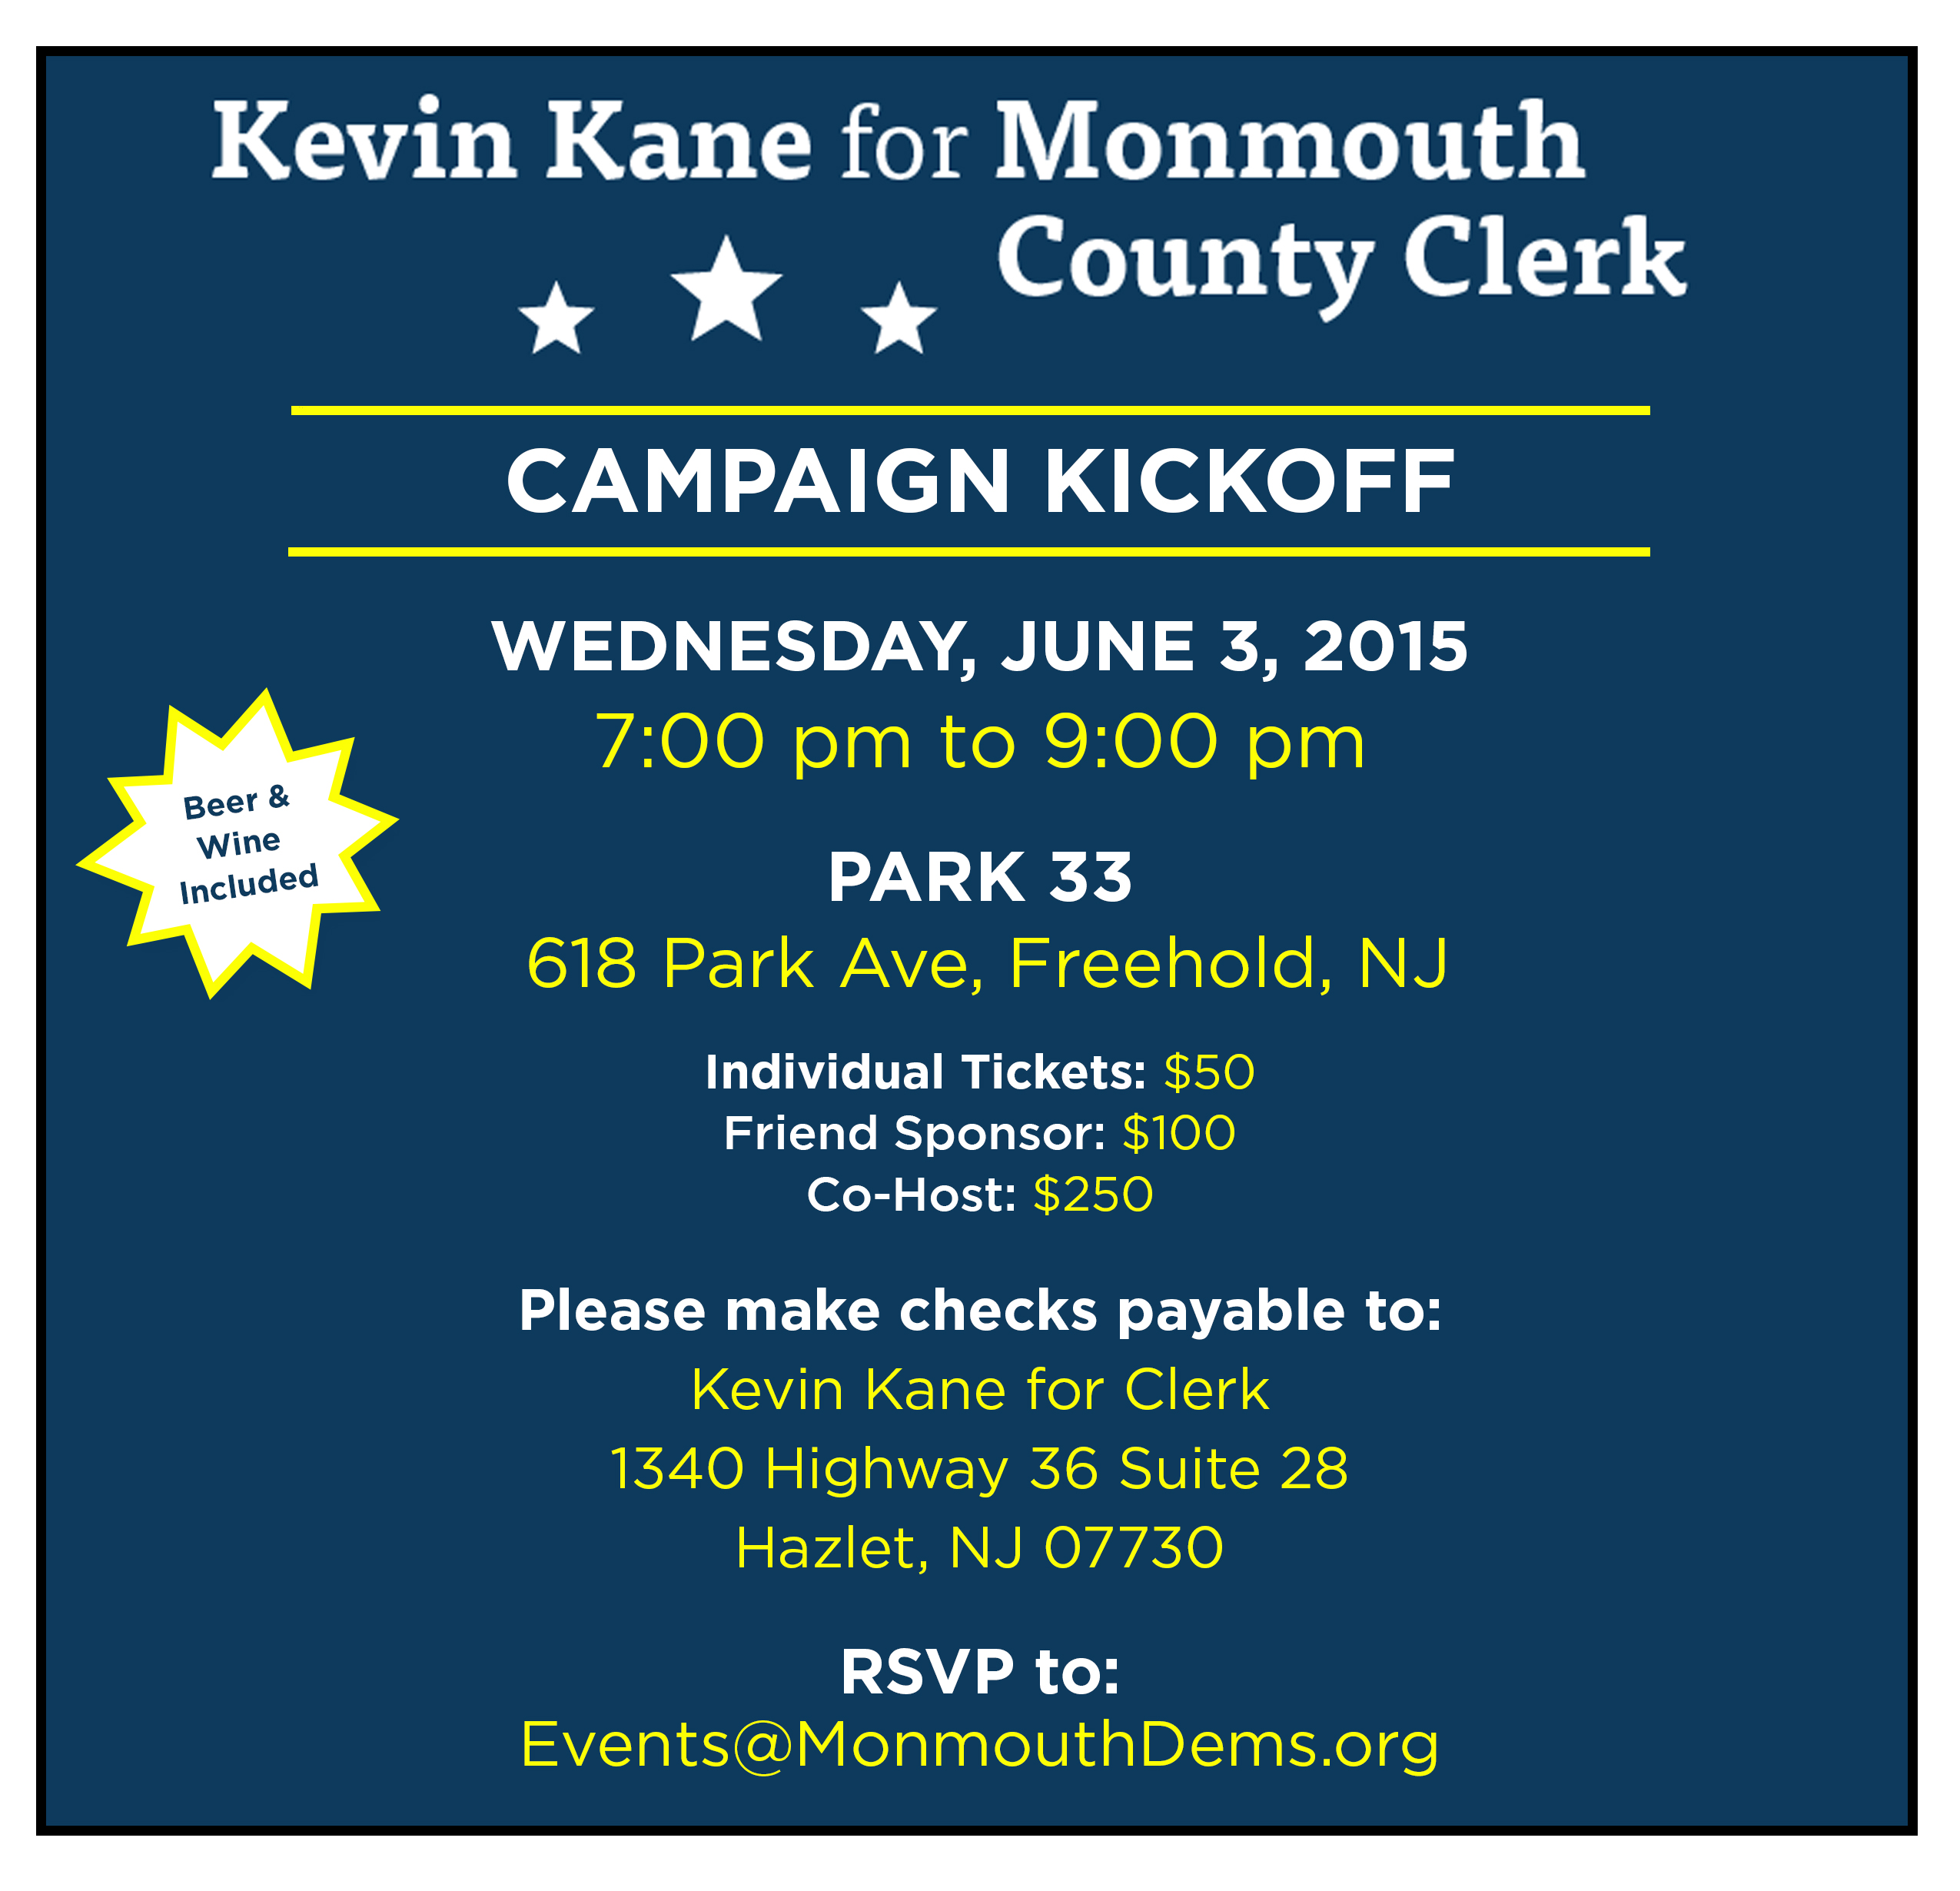 Kane_for_Clerk_Campaign_Kickoff_2015_Invite.jpg